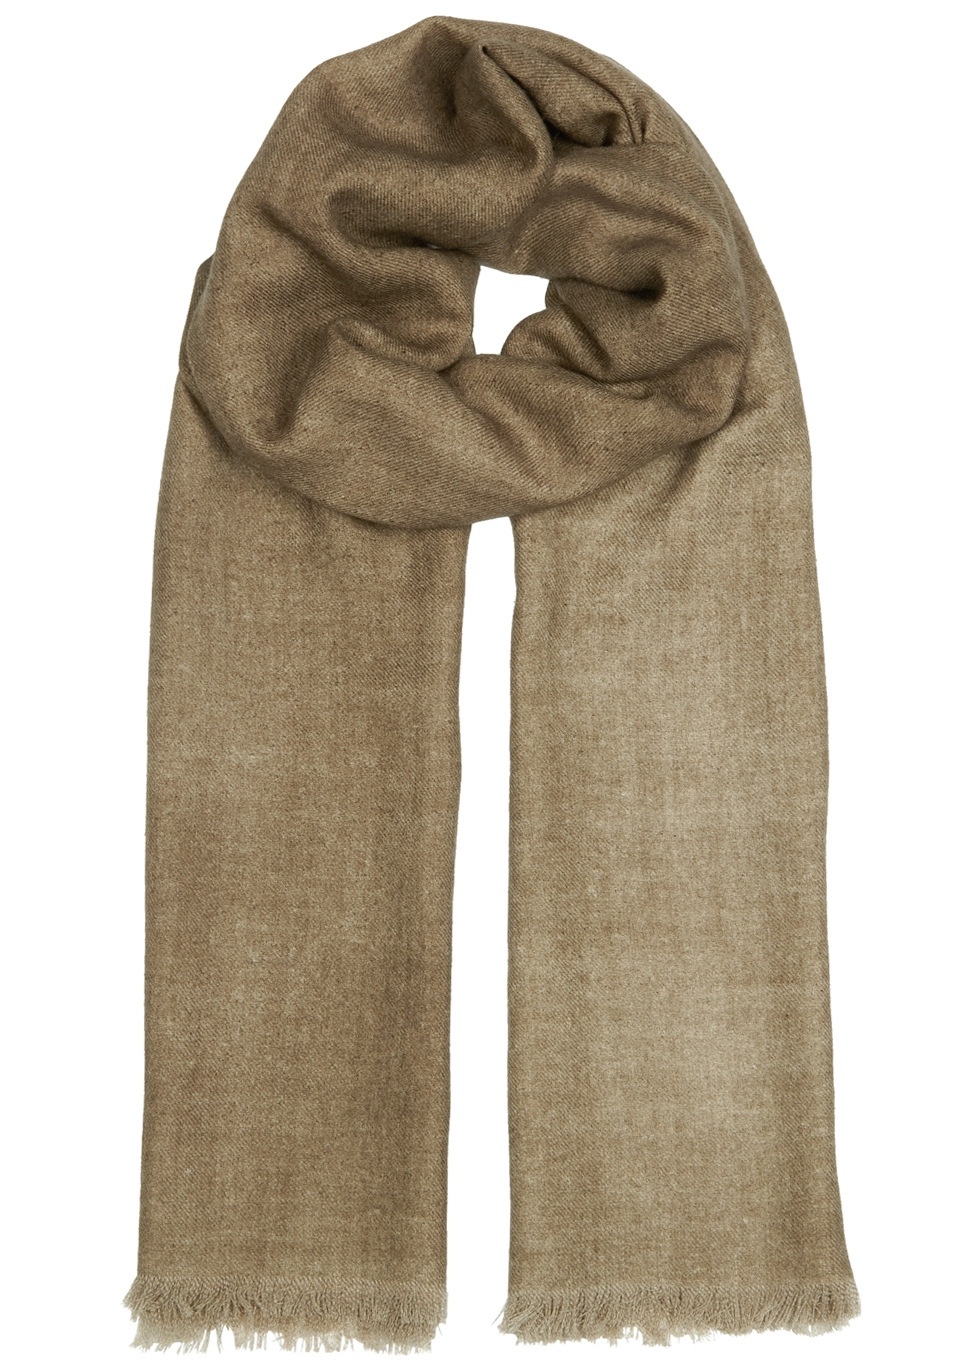 AMA PURE Olive Wool Scarf